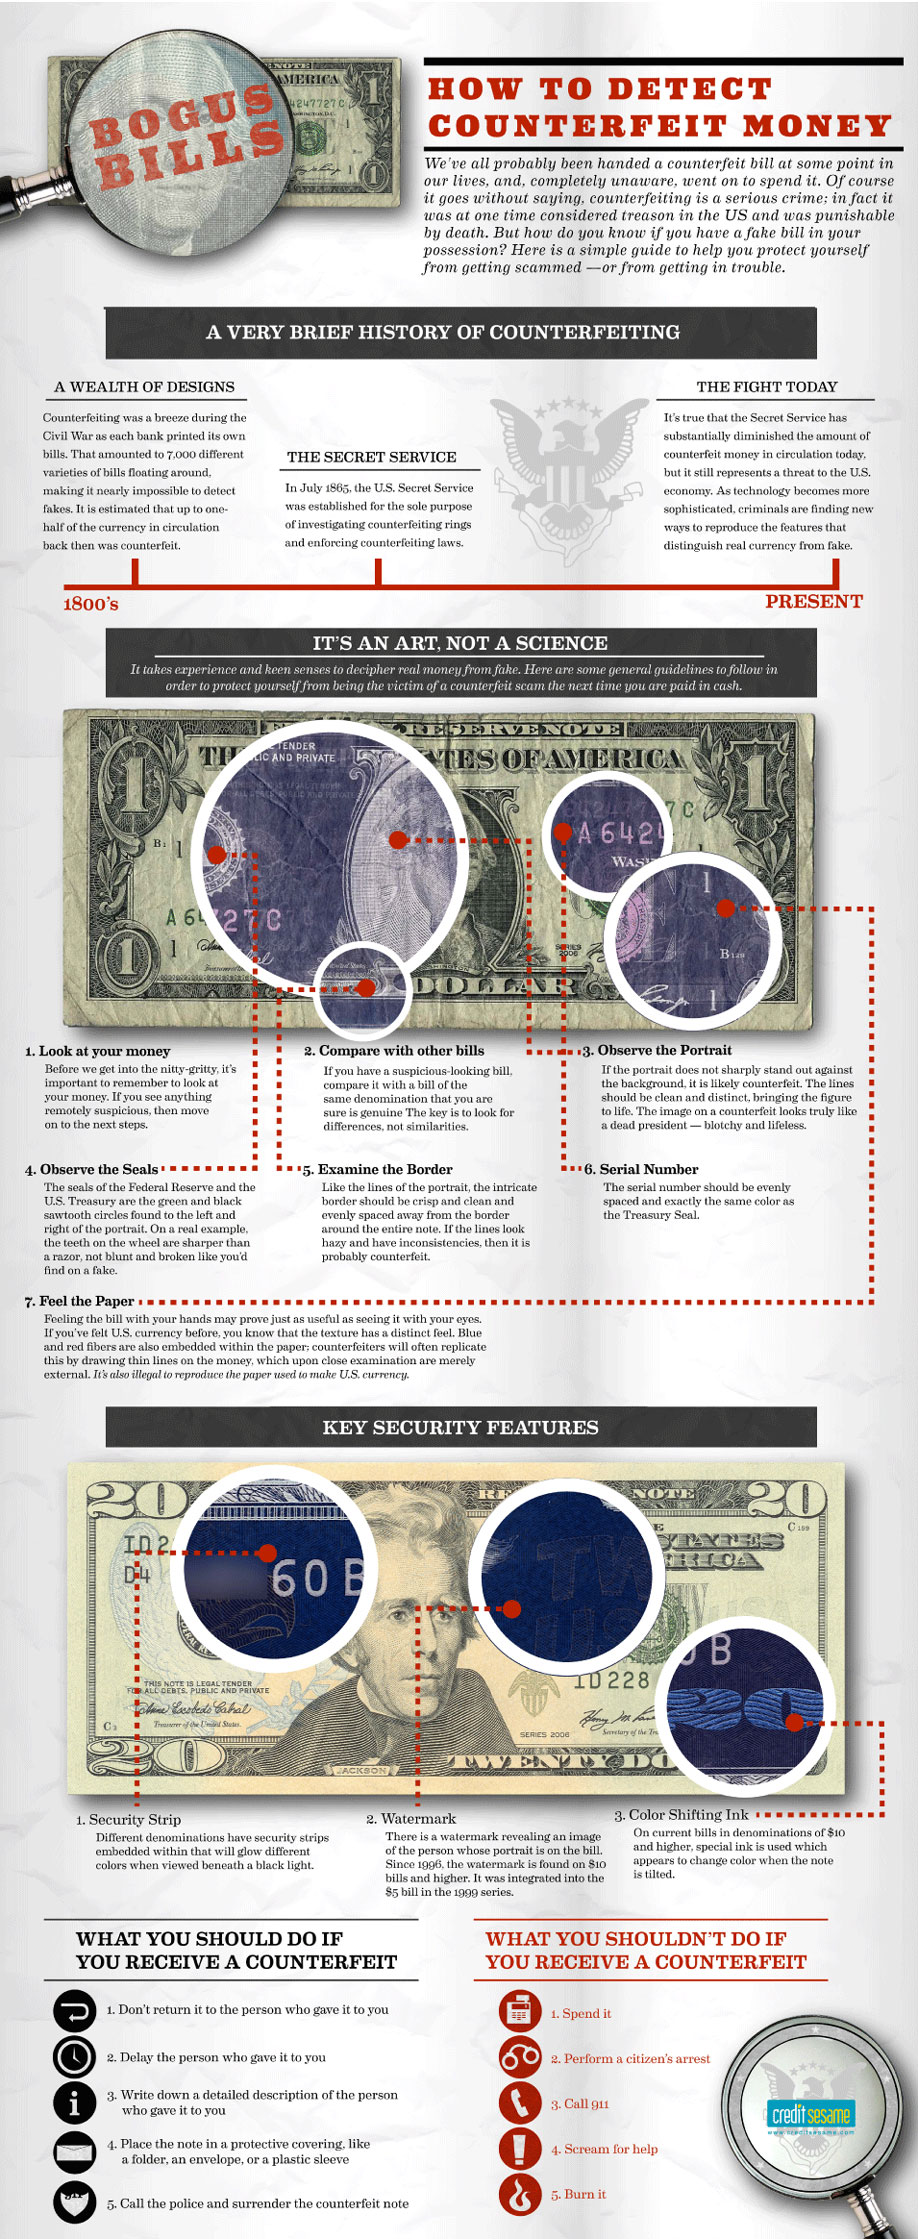 How To Detect Counterfeit Money